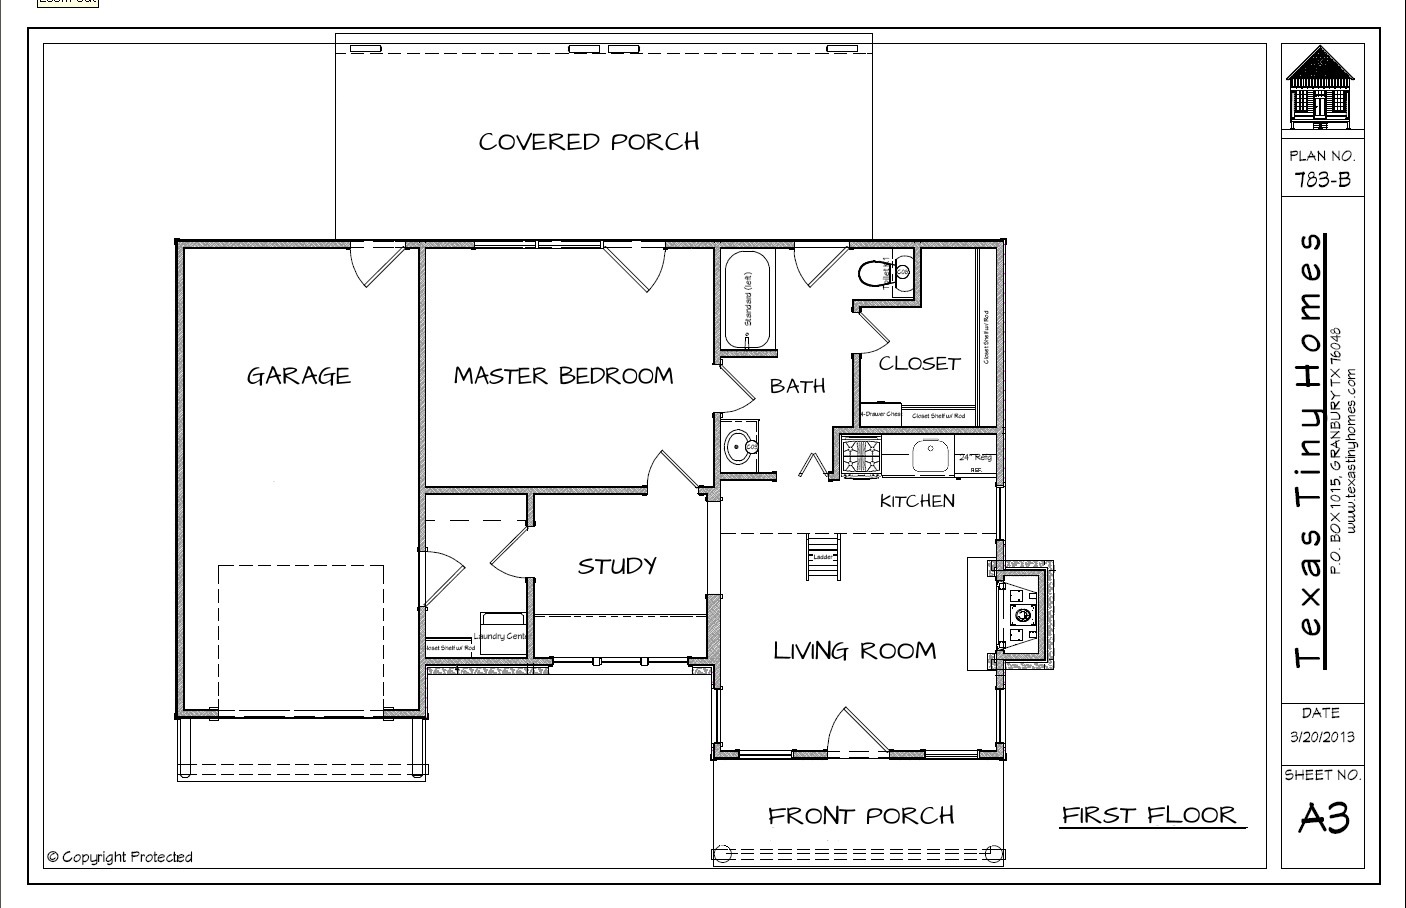 Plan 783 texas tiny homes for Small home construction plans